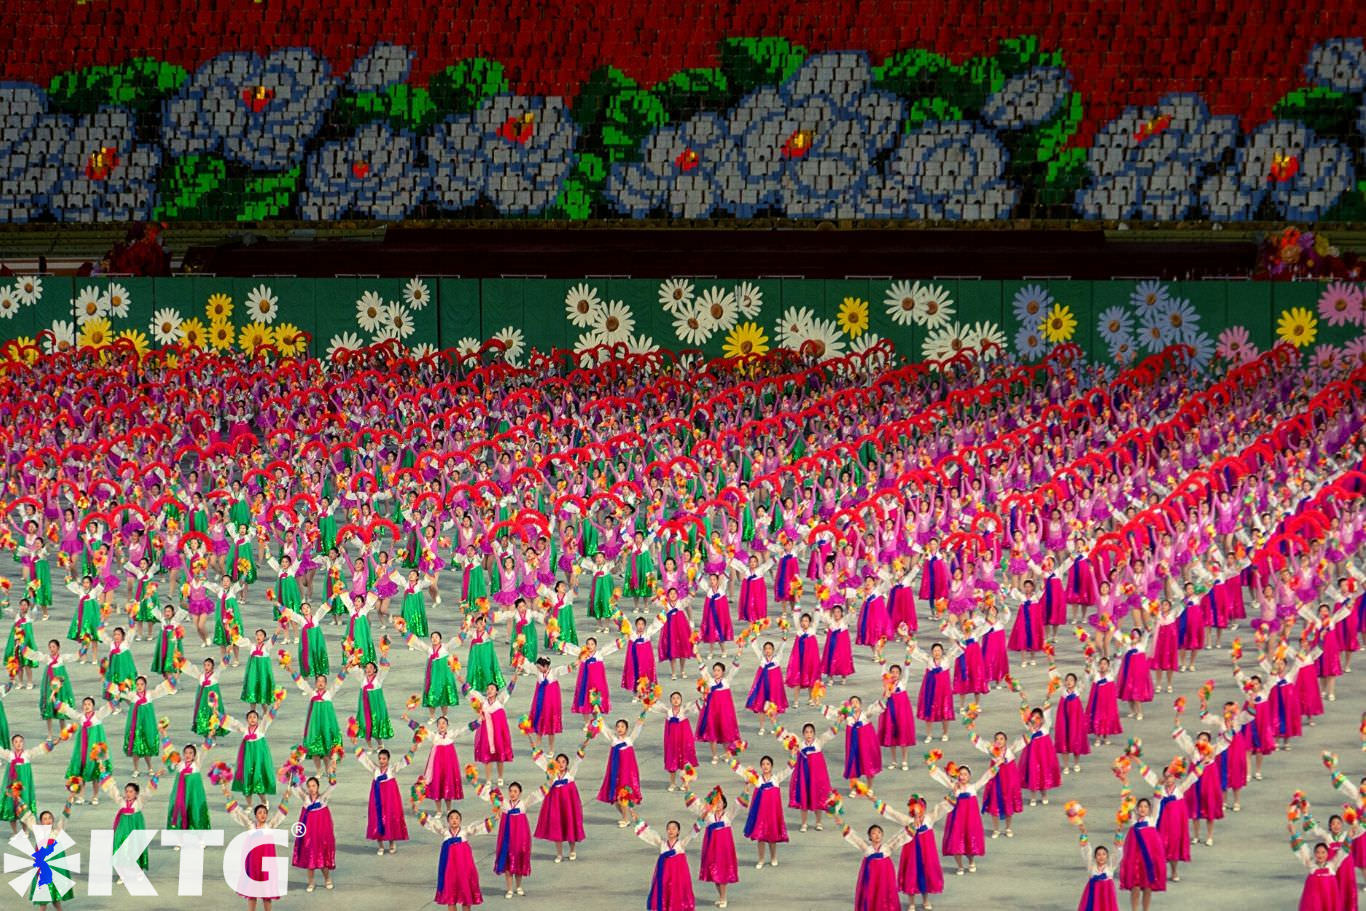 North Korean ladies performing at the Mass Games in May Day Stadium, August 2019, in Pyongyang, North Korea (DPRK). Trip arranged by KTG Tours